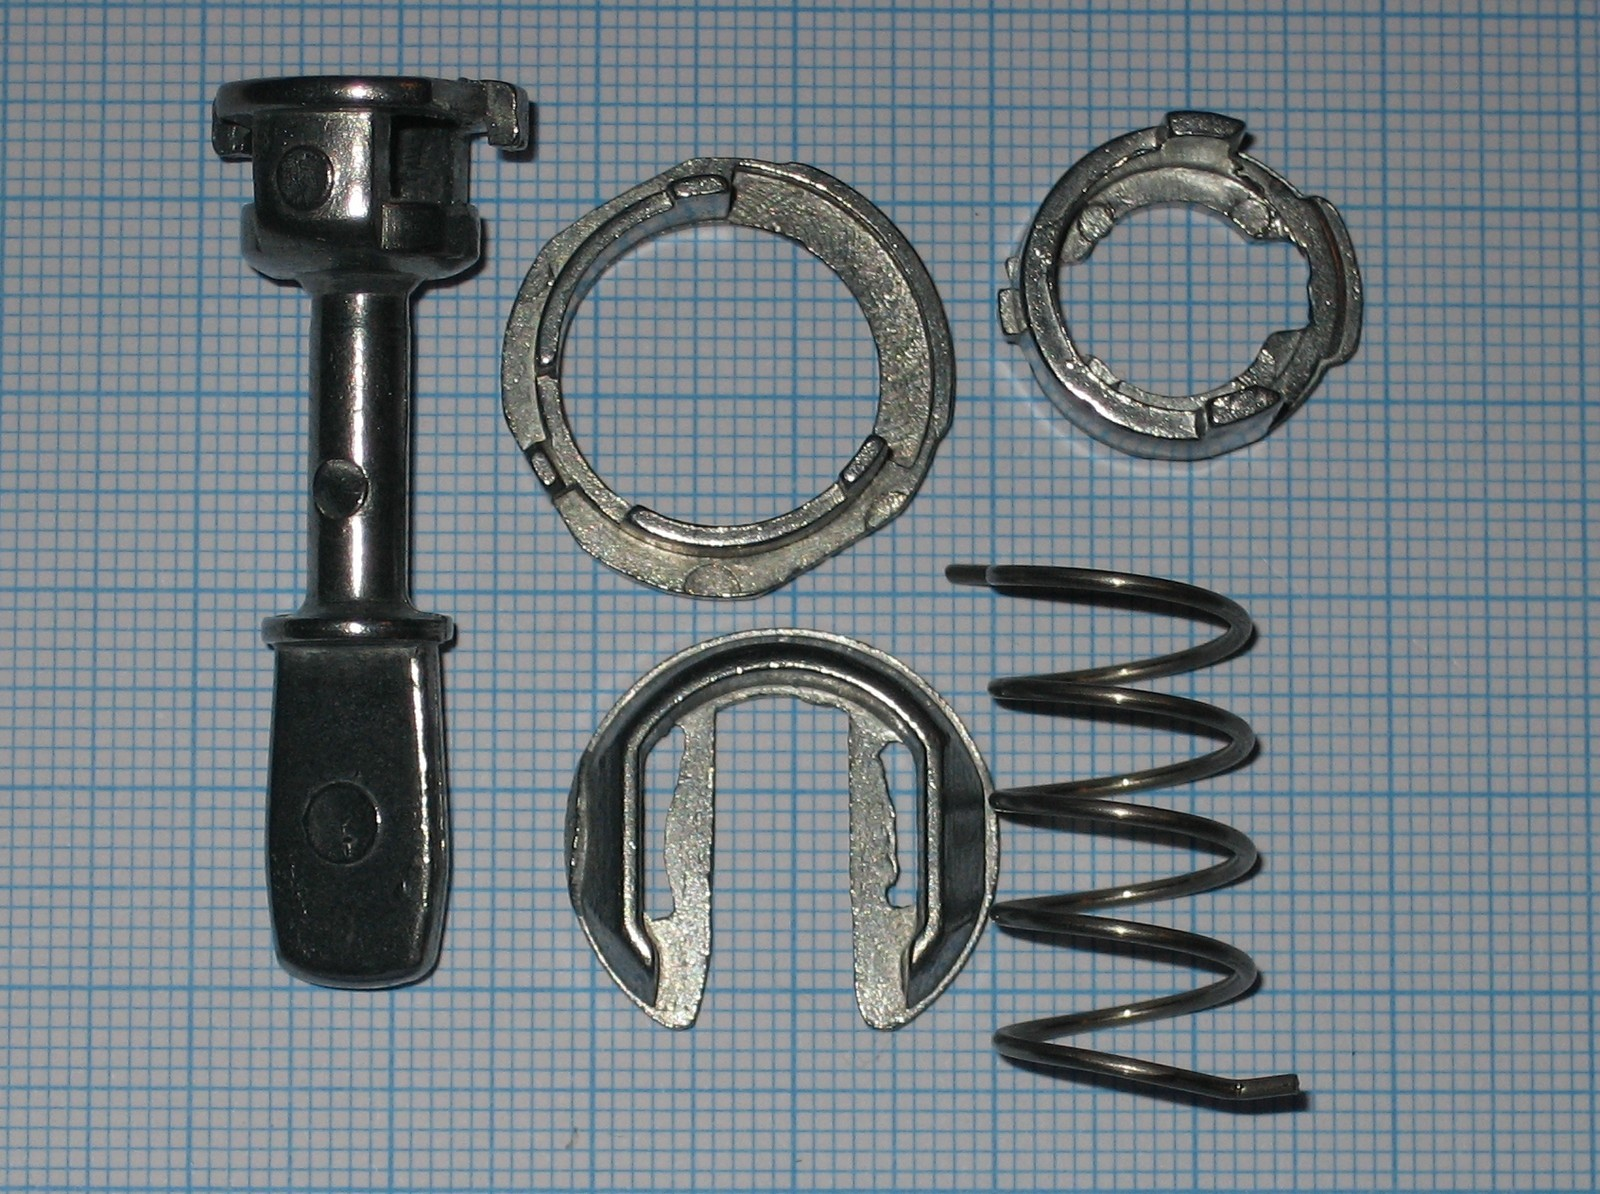 Audi A6 Lock Repair Kit